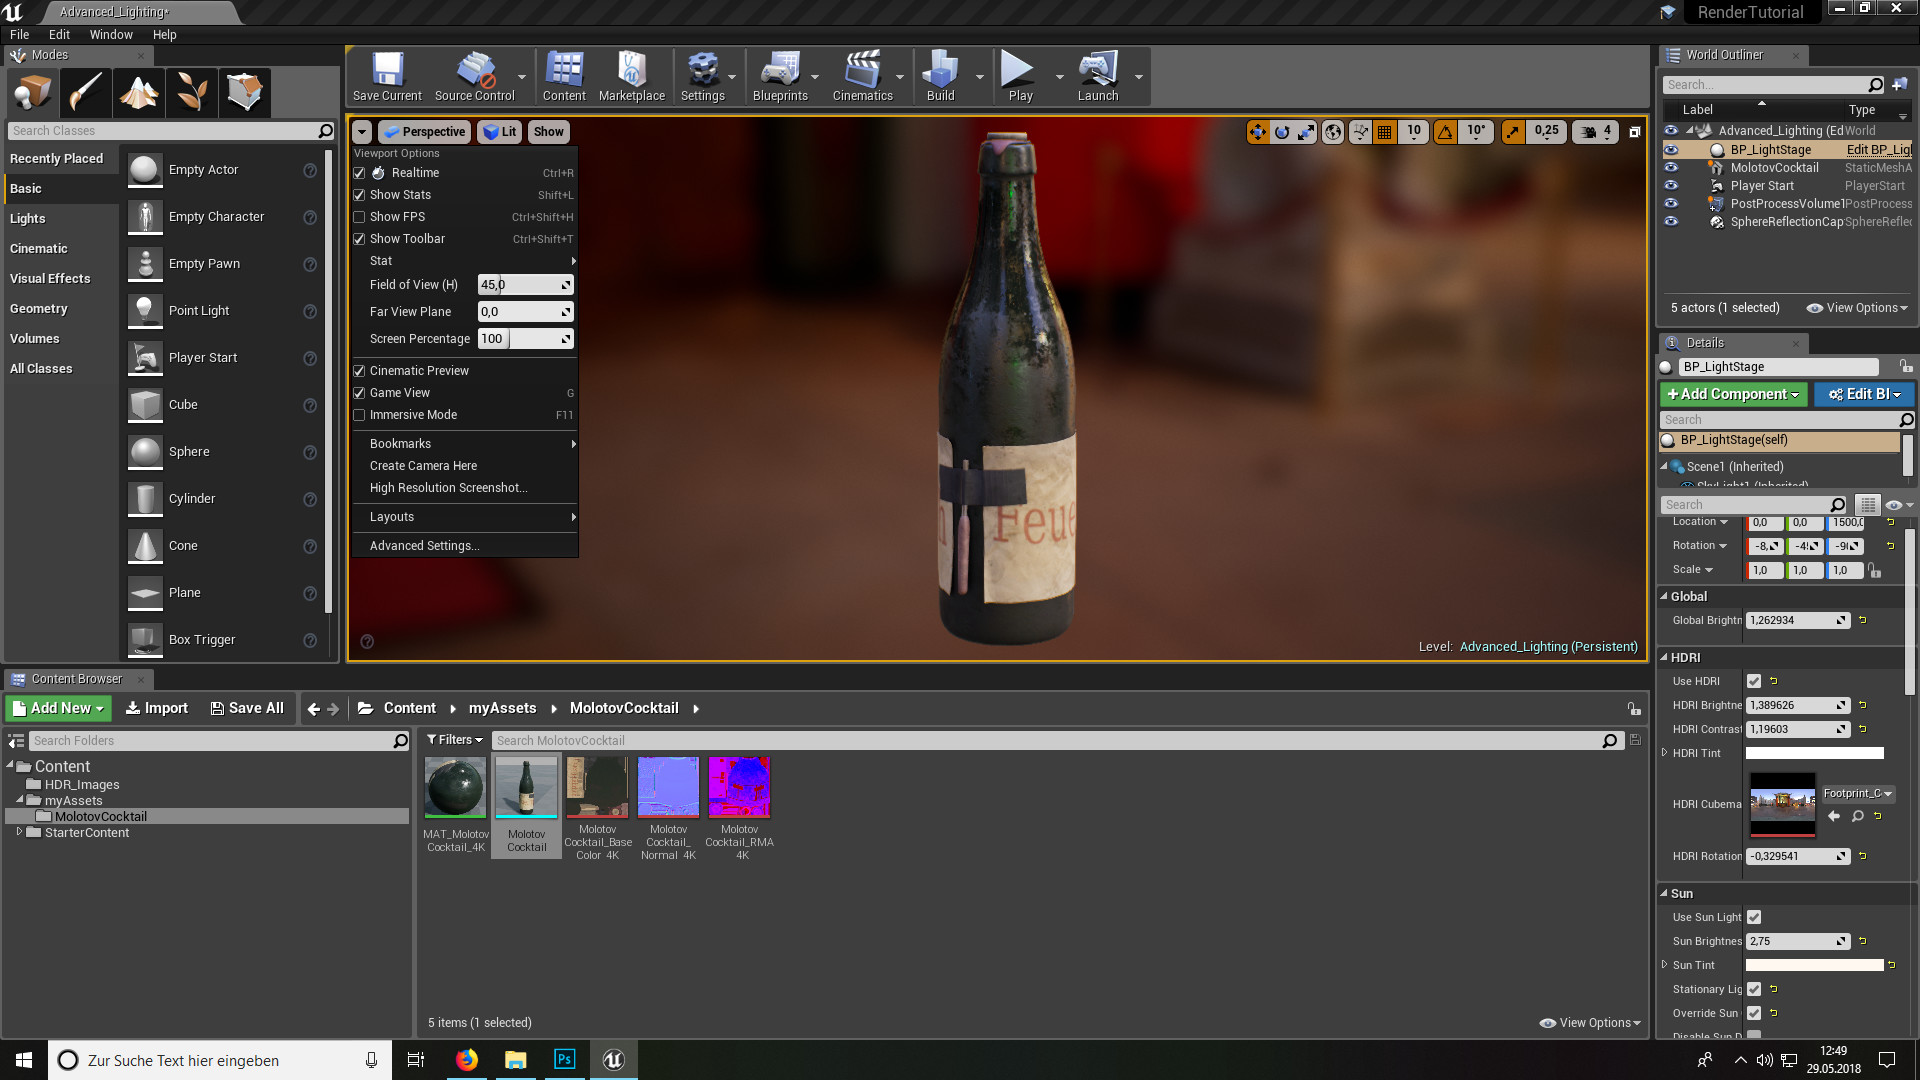 Guide: Rendering in Unreal Engine 4